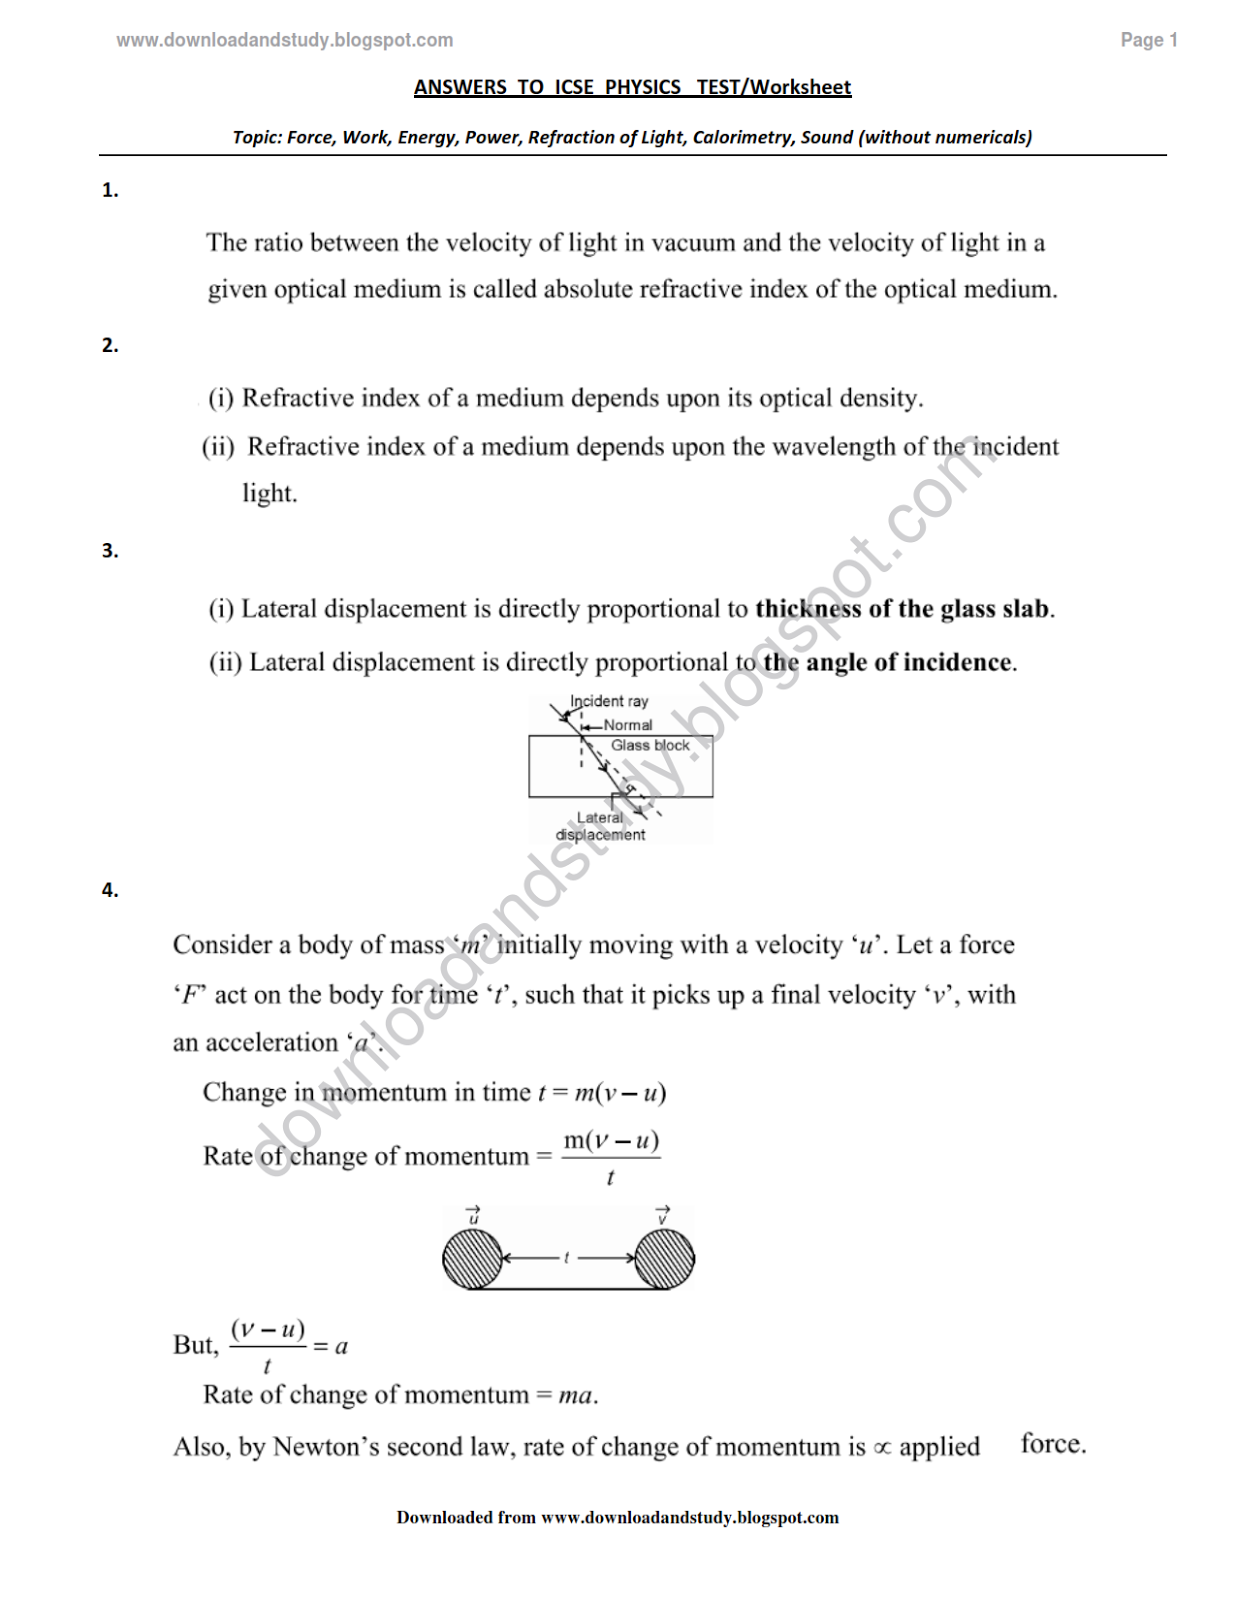 Worksheets Calorimetry Worksheet download study solution to icse physics test worksheet units force work energy power refraction of light calorimetry sound without numericals